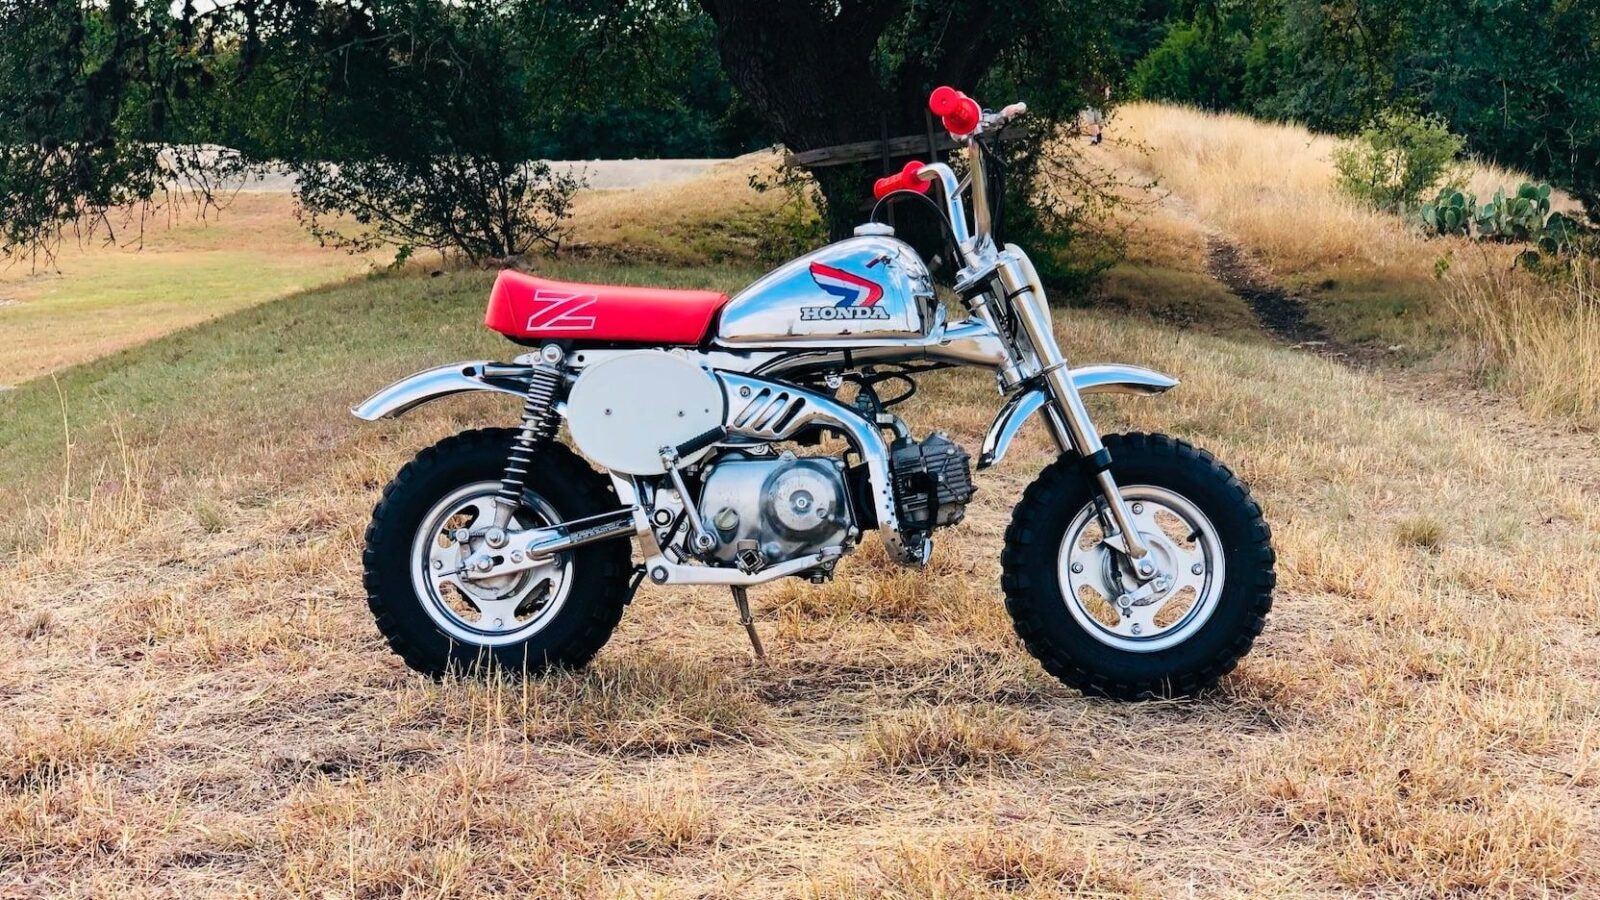 One Of The Rarest Original Monkey Bikes The Honda Z50r Christmas Special